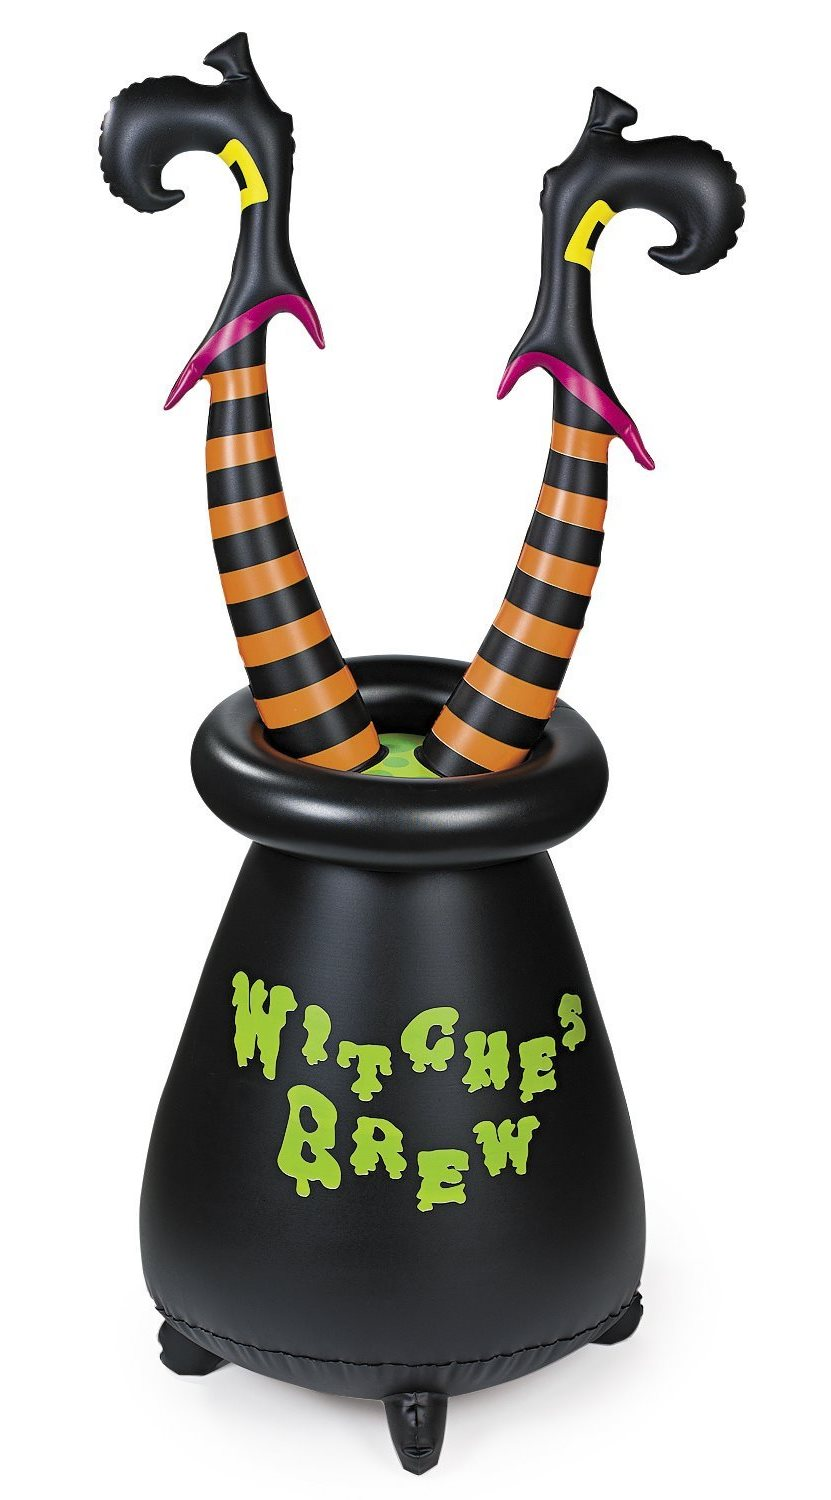 Inflatable Witches Cauldron with Witches Legs